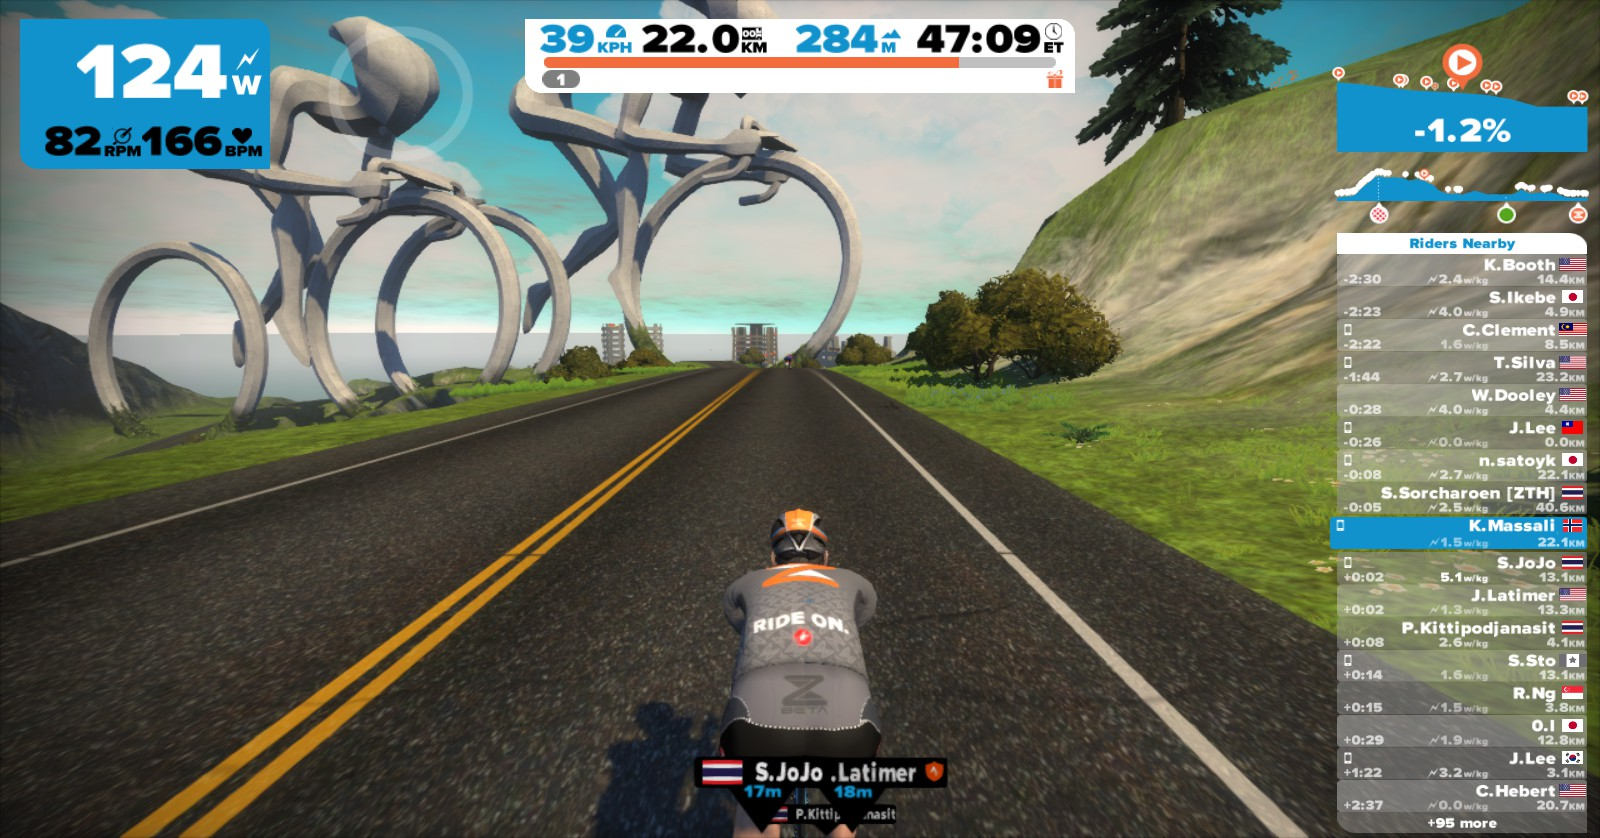 Zwift in-game